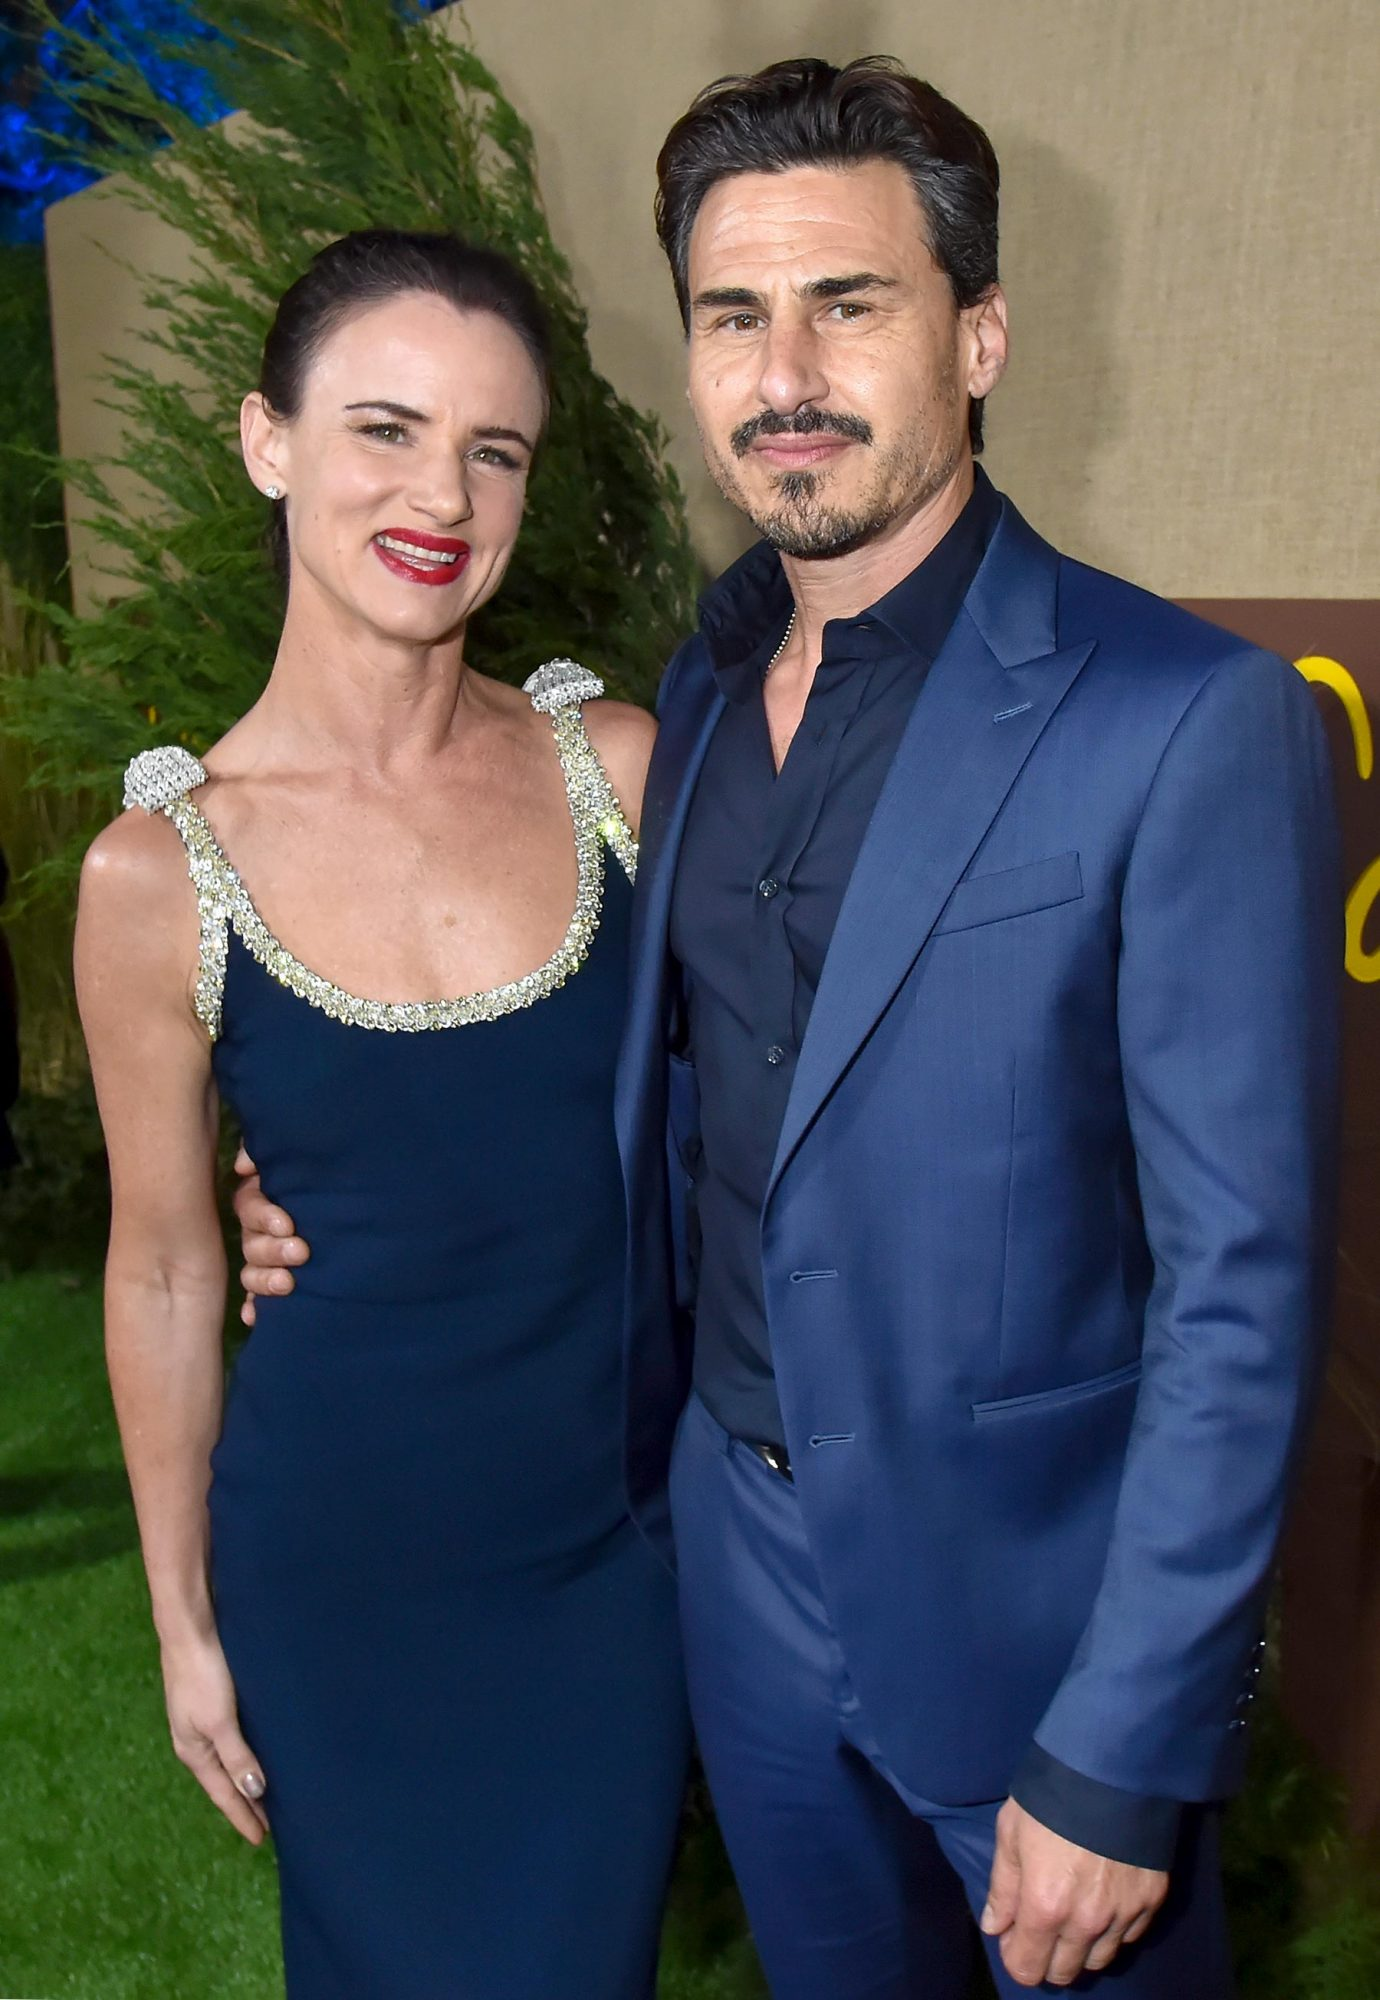 HOLLYWOOD, CA - OCTOBER 10: Juliette Lewis and Brad Wilk attend HBO's Los Angeles premiere of Camping at Paramount Studios on October 10, 2018 in Hollywood, California. (Photo by Jeff Kravitz/FilmMagic for HBO)